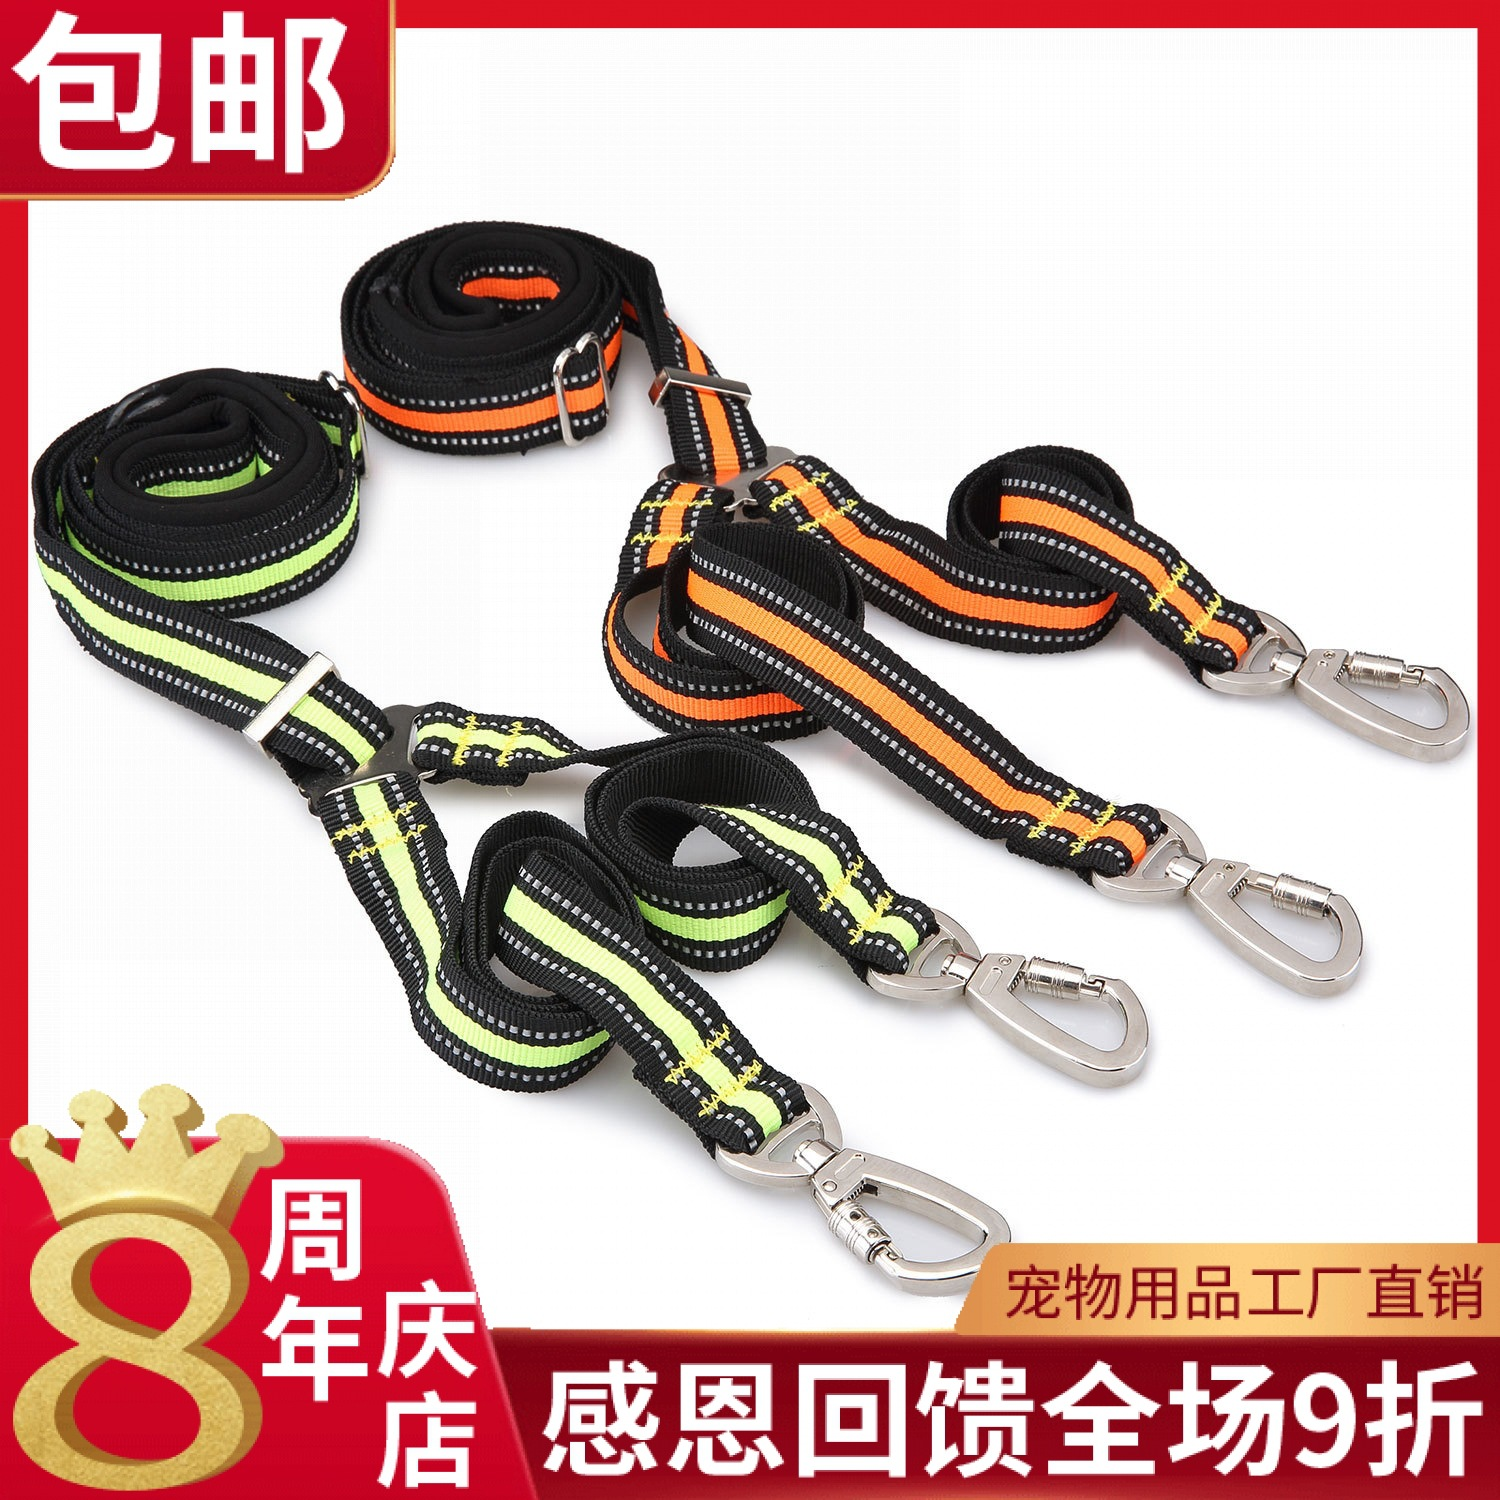 2020 New Style Nylon Double Headed Pet Traction Rope Elasticity Traction One Plus Two Adjustable Big Dog With Hand Holding Rope